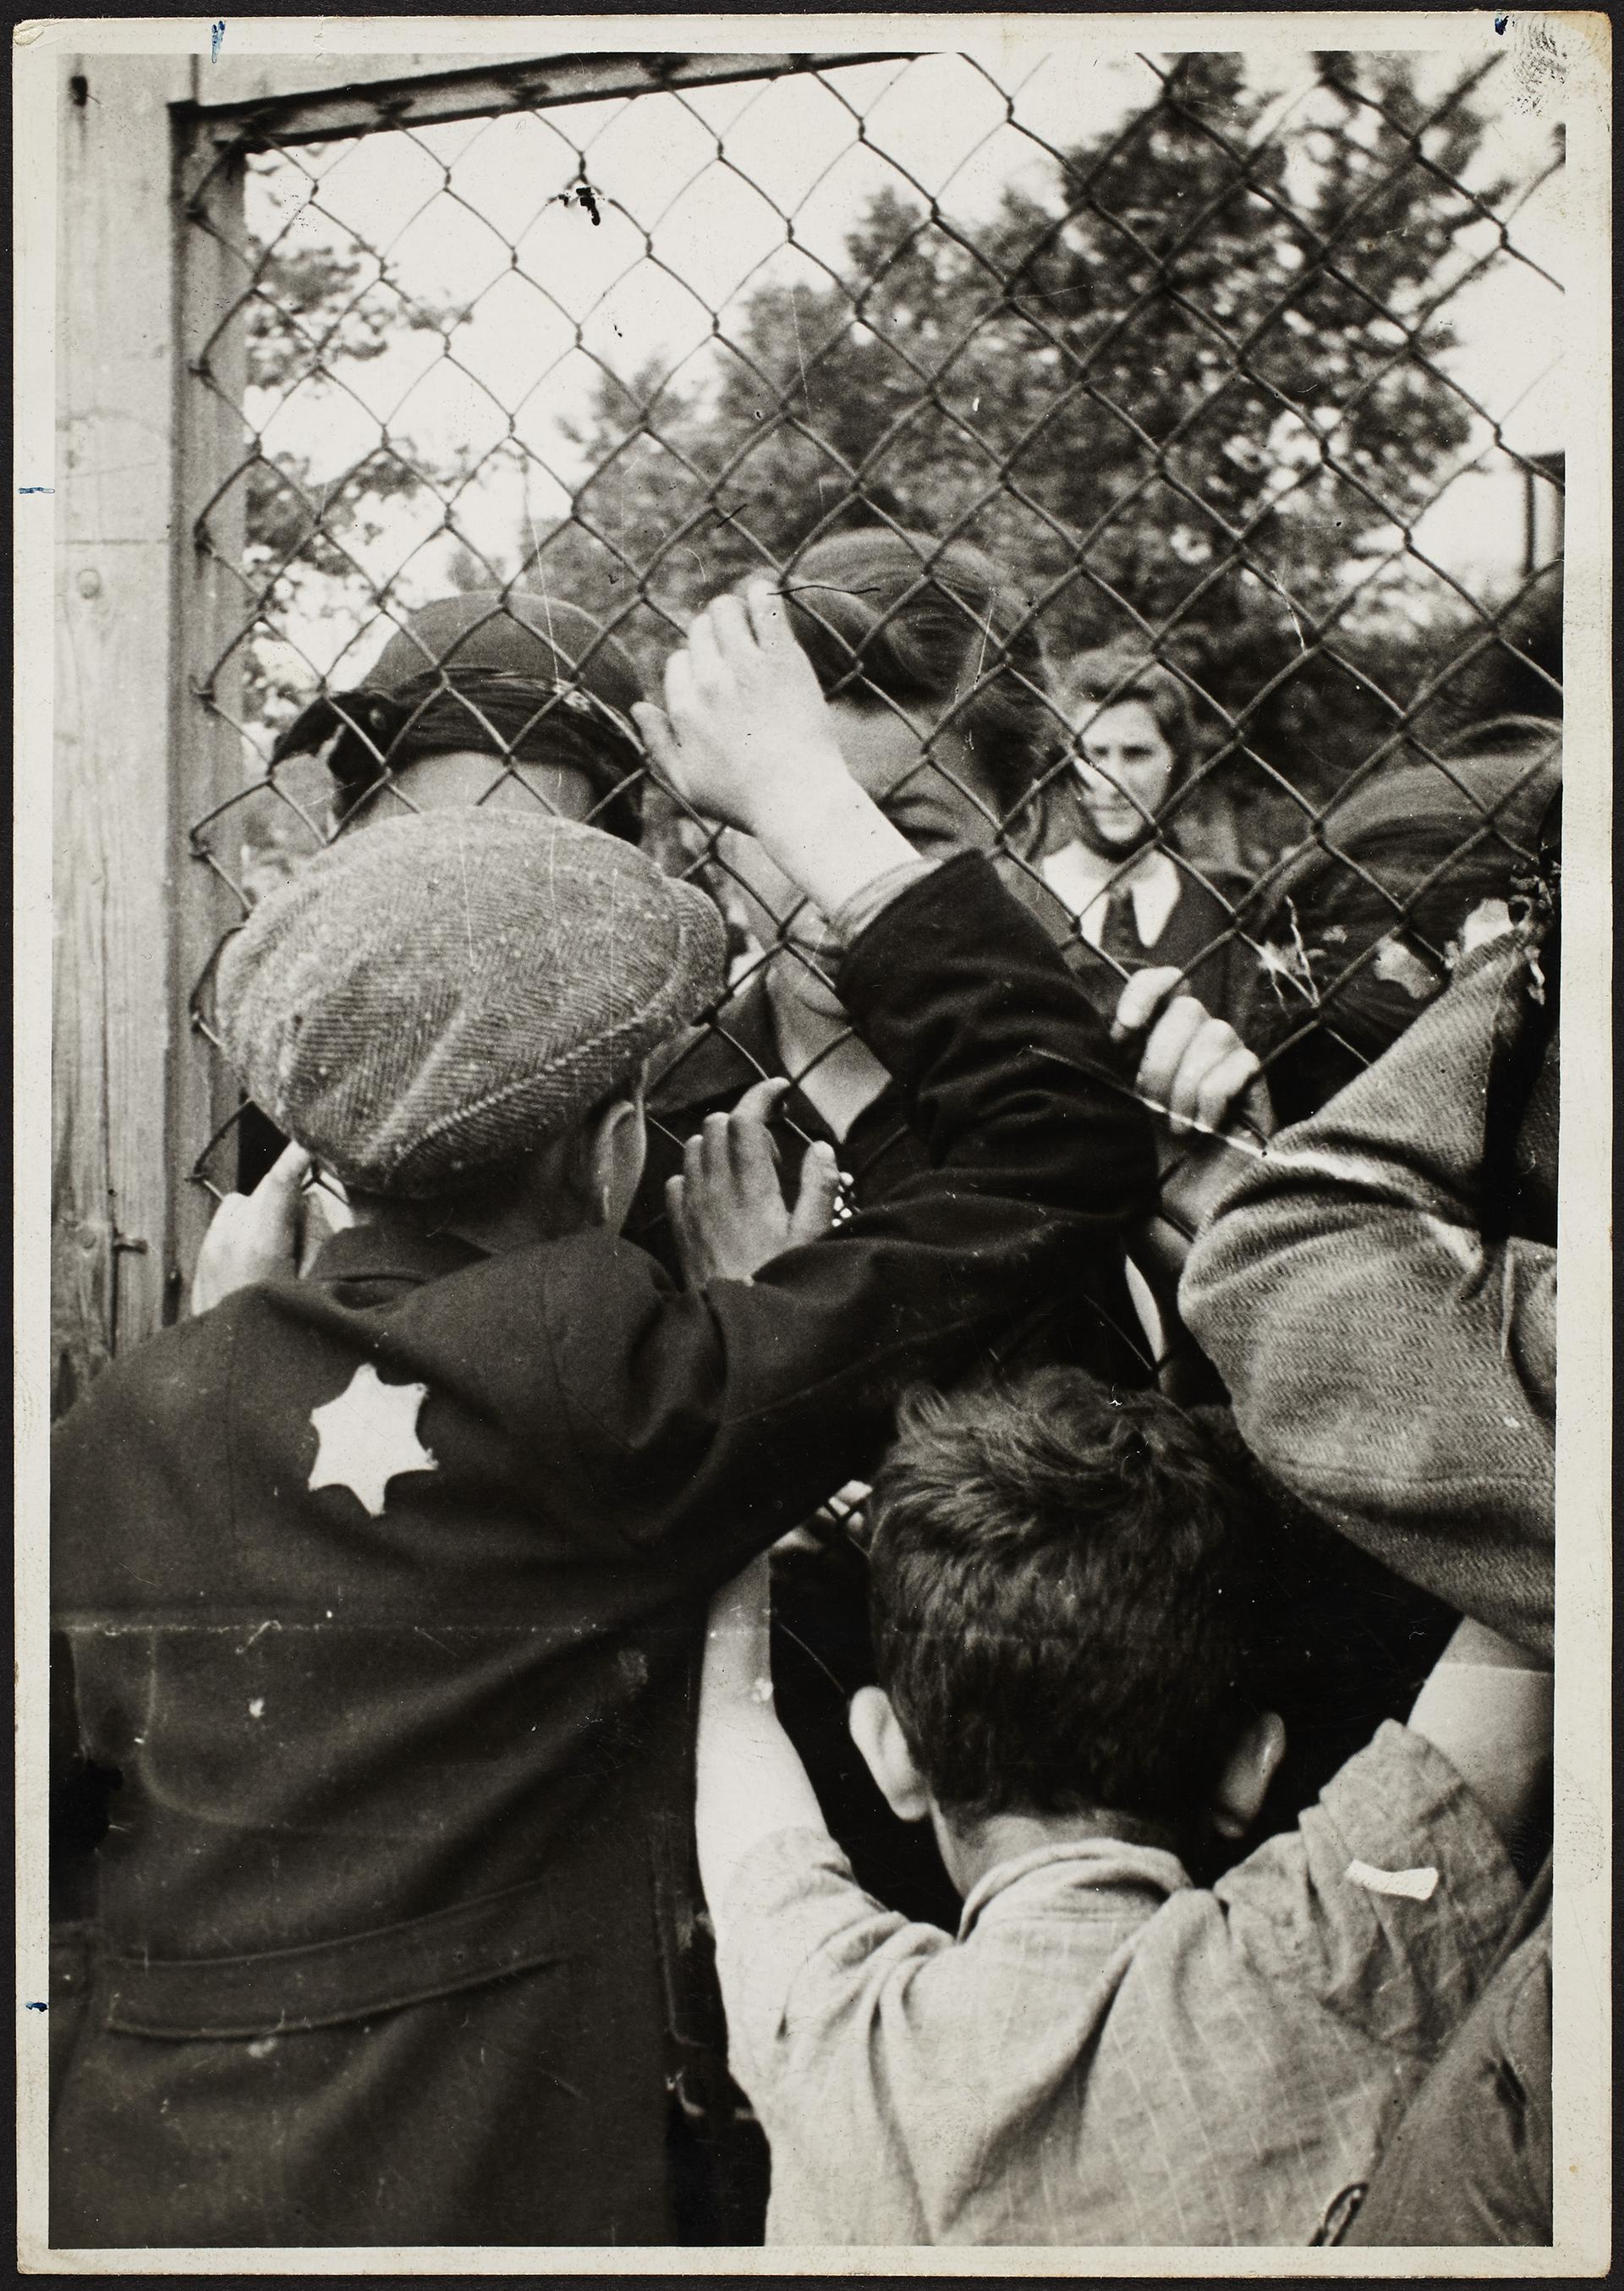 Ross's photo of children talking through the fence of a prison in the Lodz Ghetto prior to deportation, from the MFA exhibit.